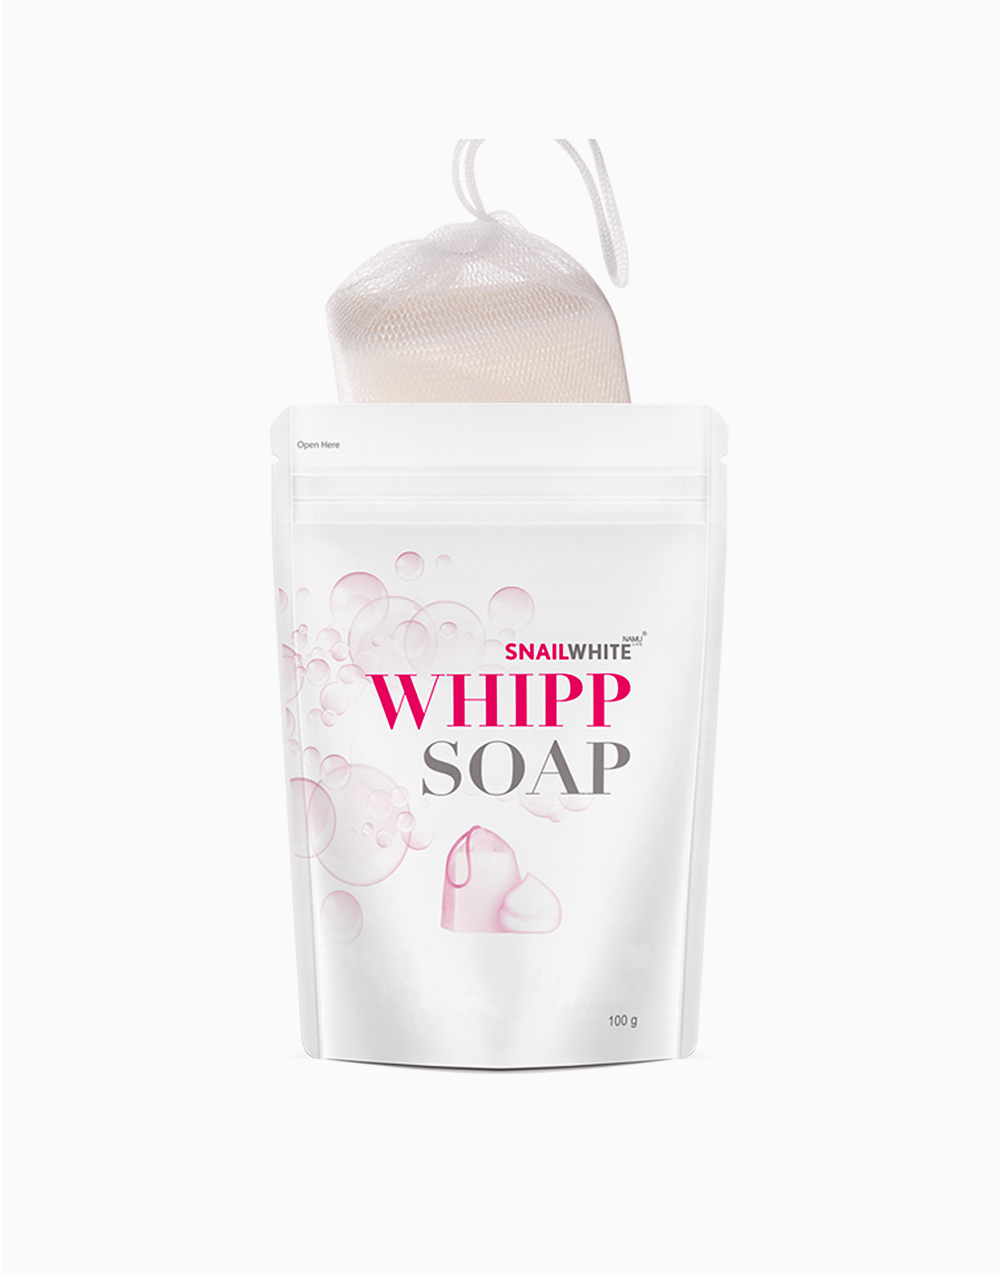 Whipp Soap (100g) by SNAILWHITE